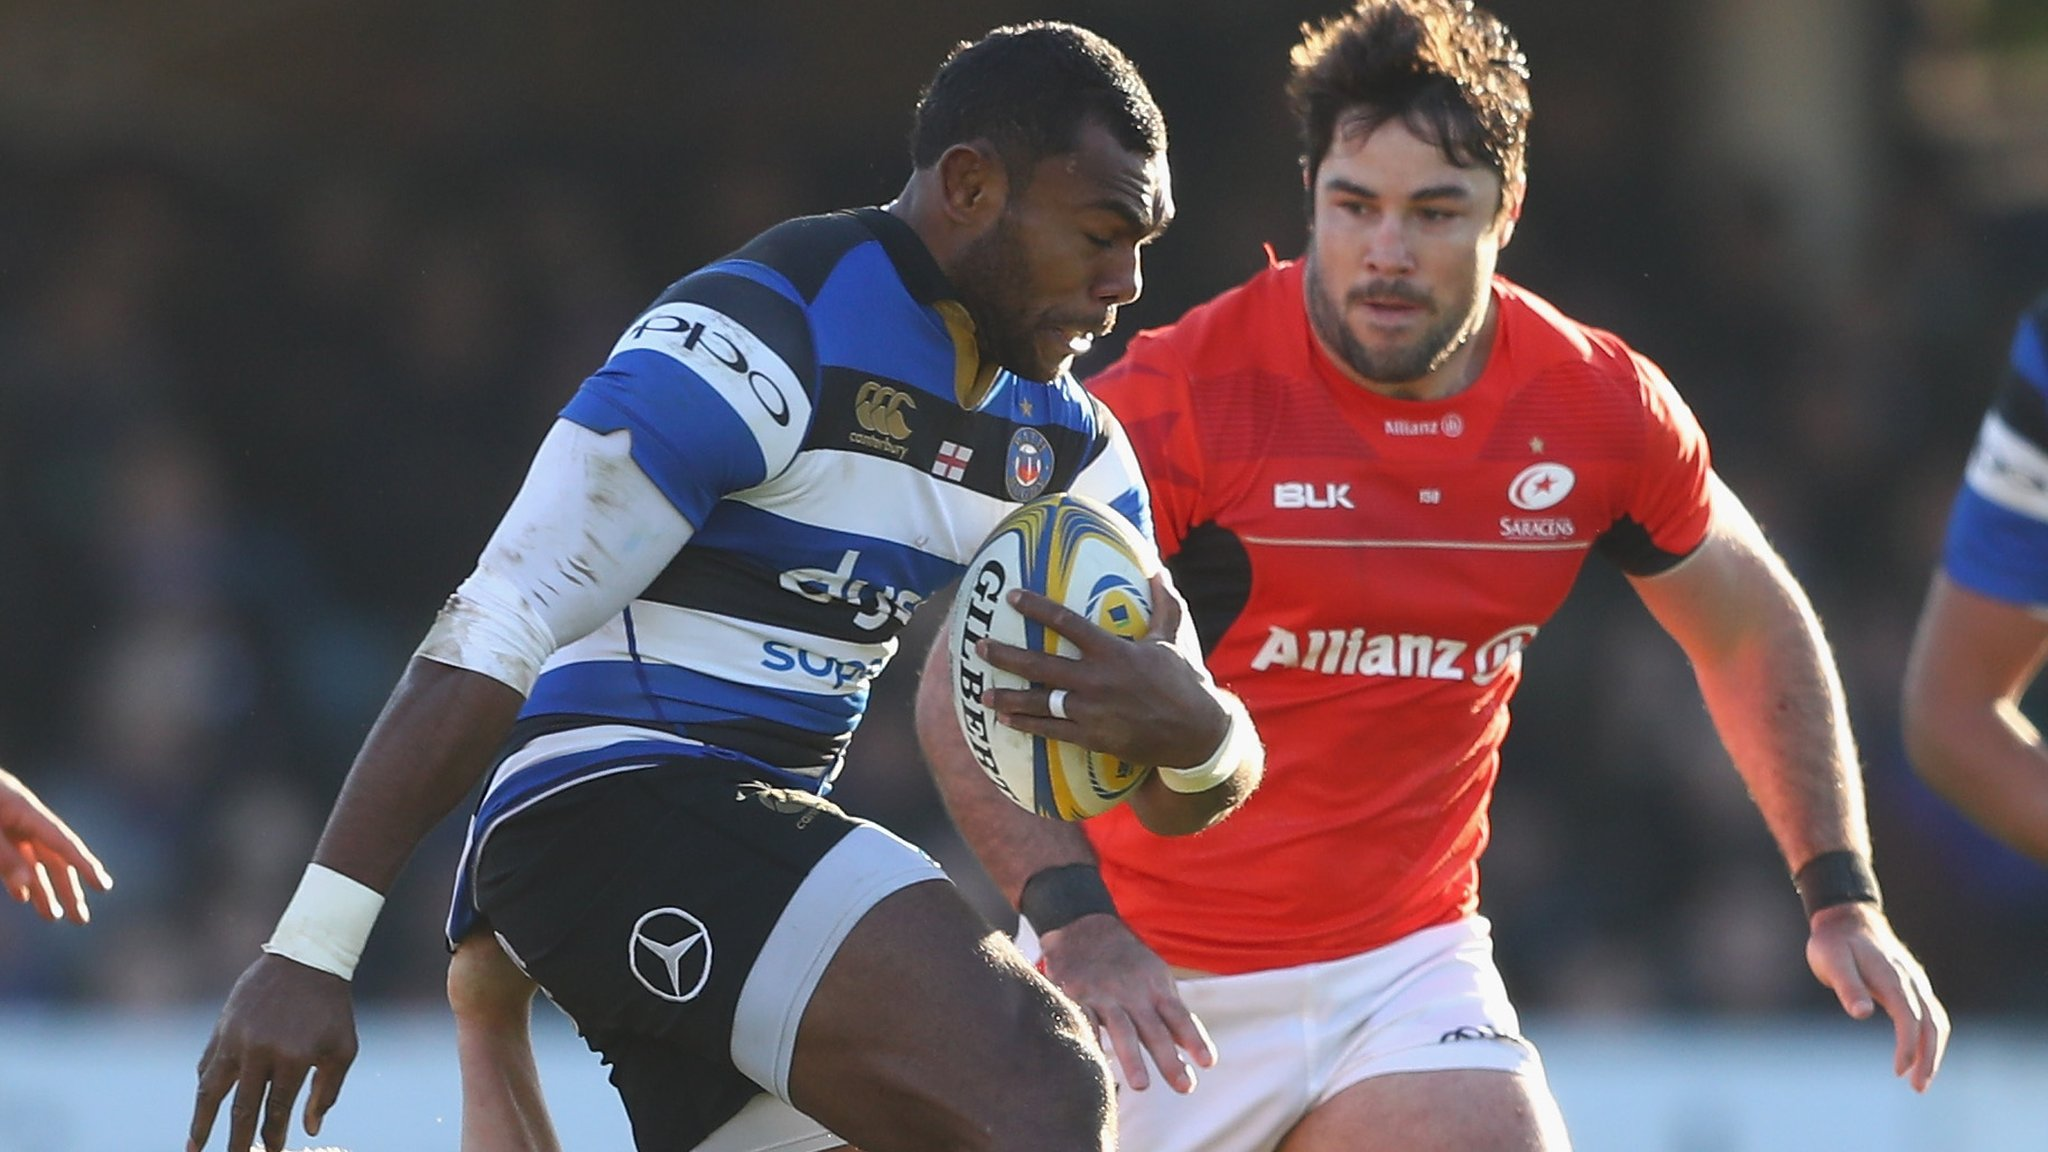 Bath hold on to beat leaders Saracens